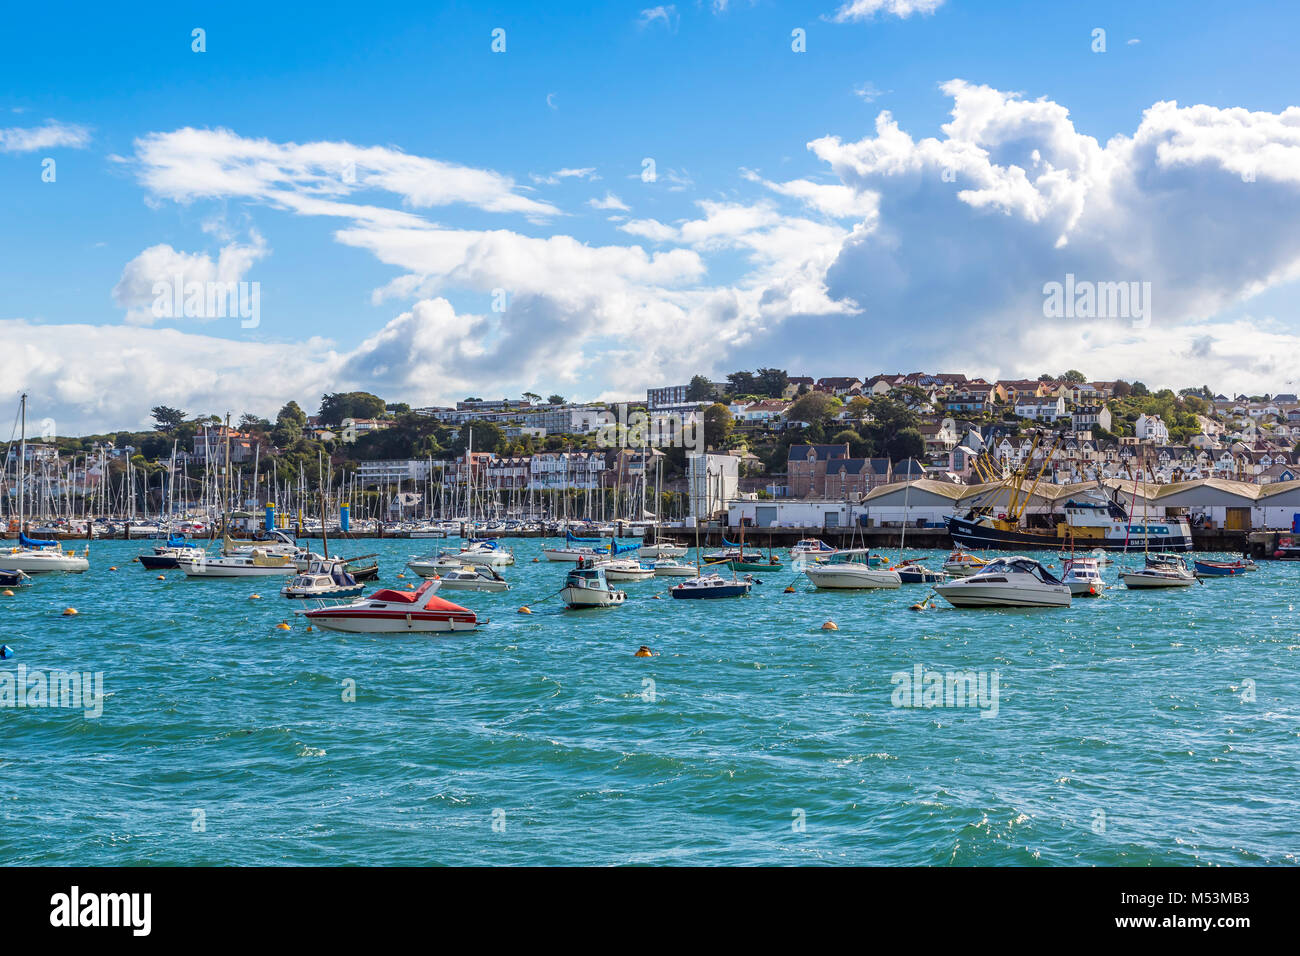 A view of Brixham harbour in South Devon, UK. - Stock Image